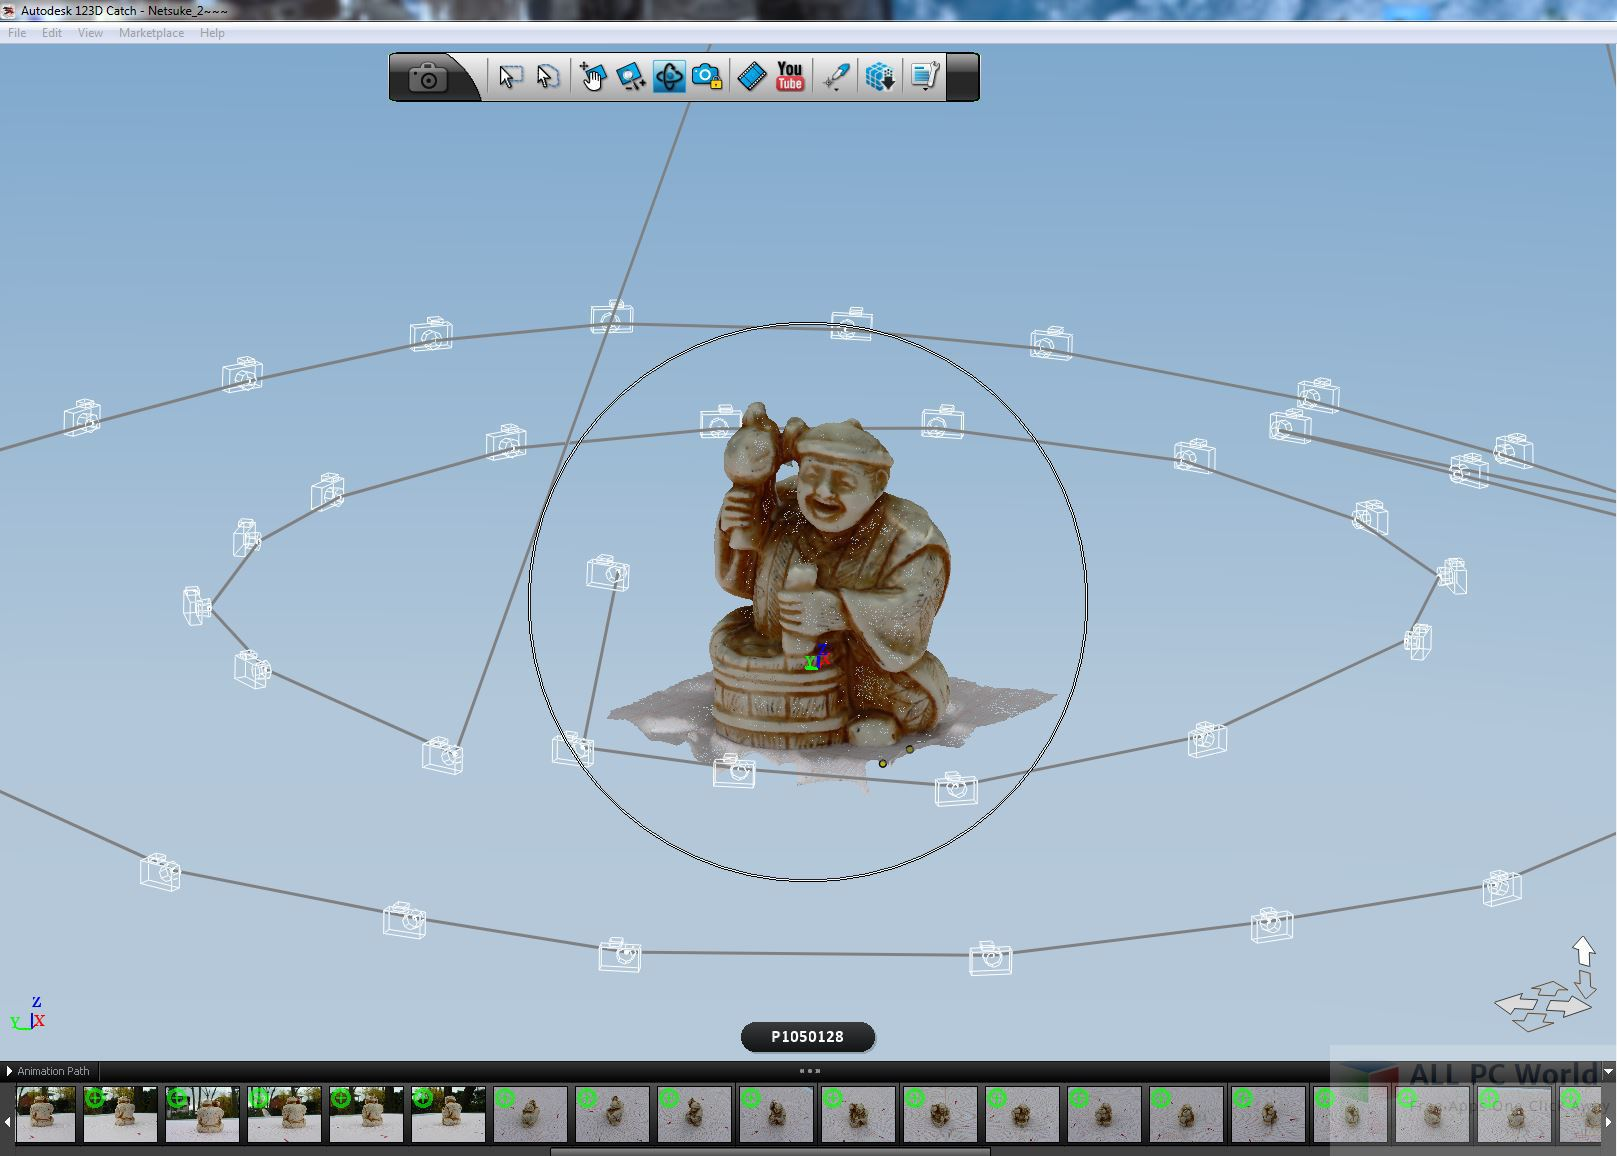 Autodesk 123D Catch Free Download - ALL PC World